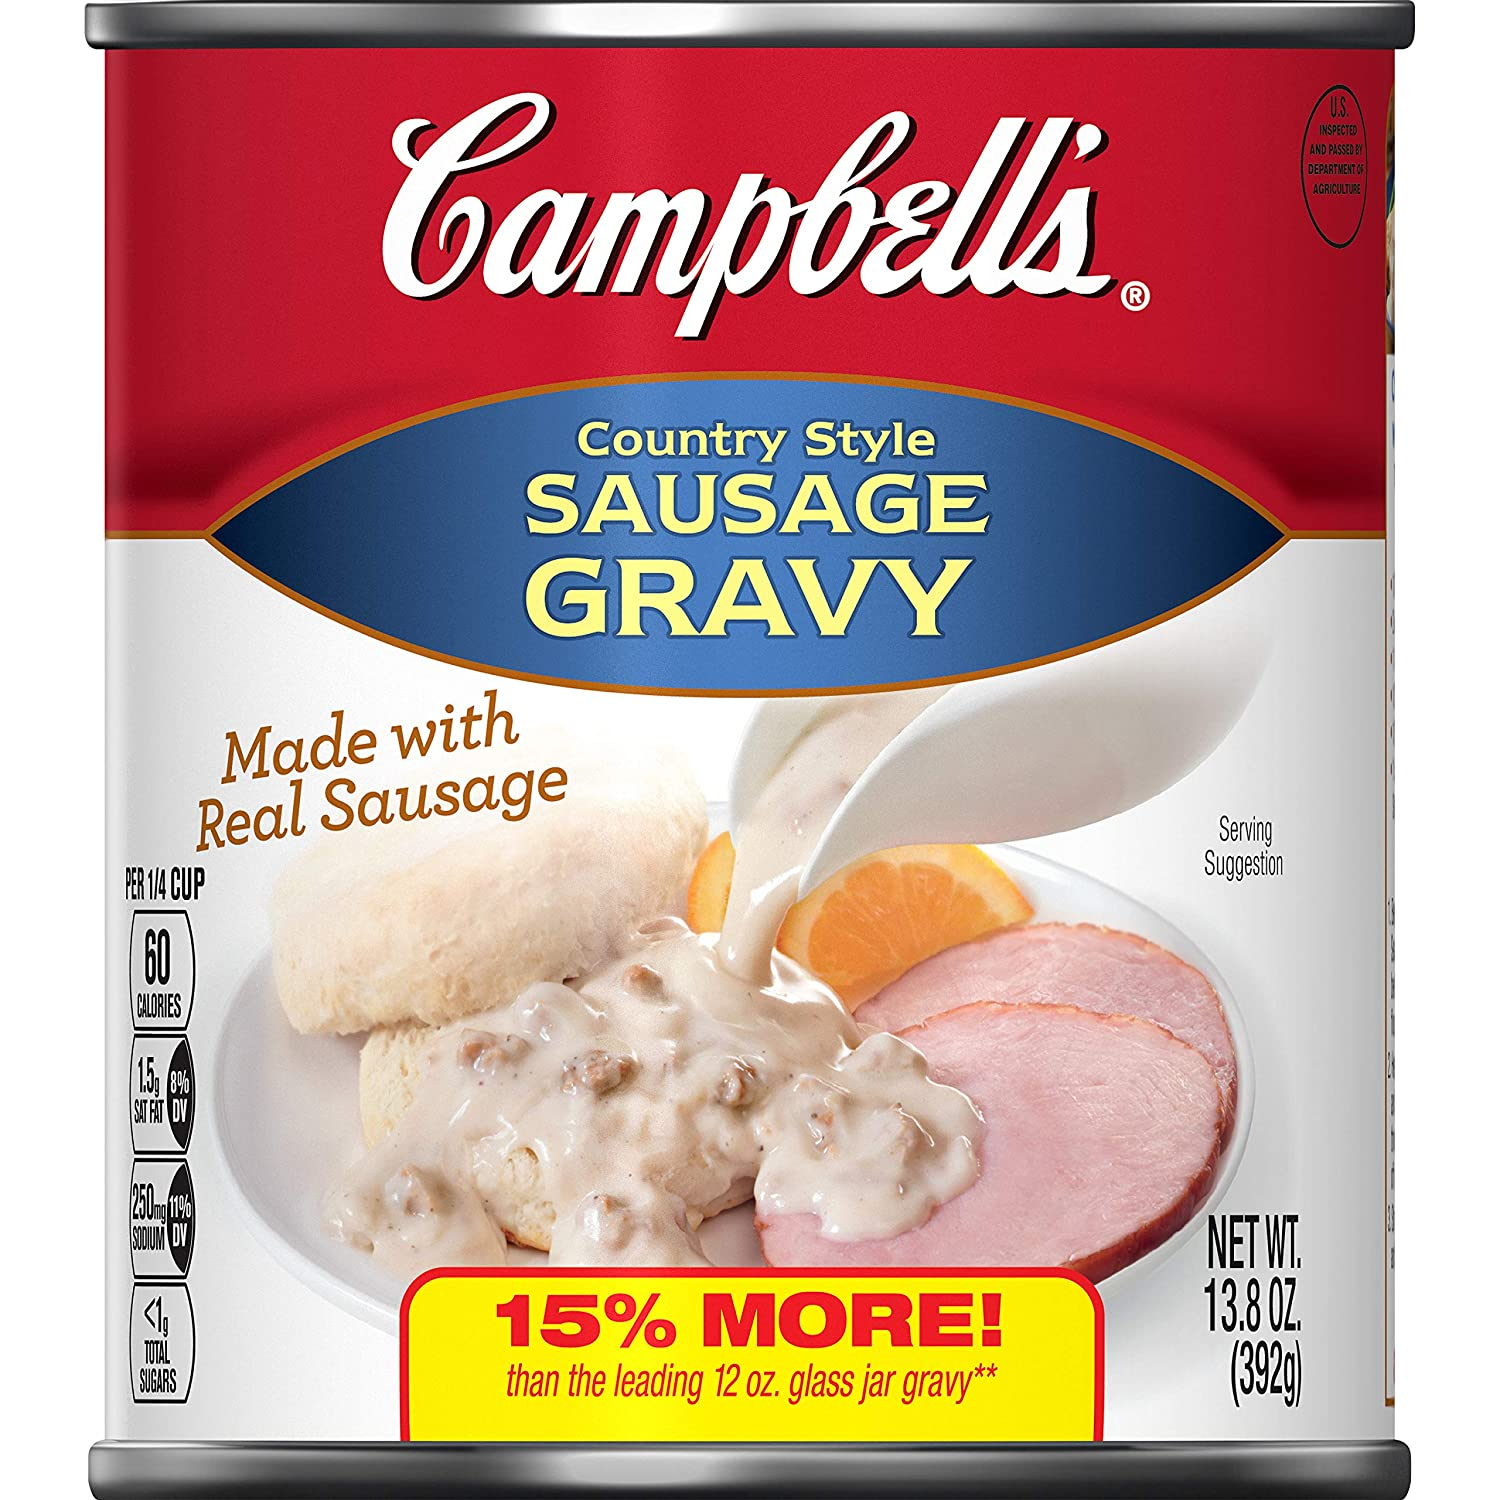 Campbell's Country Style Sausage Gravy, 13.8 oz.